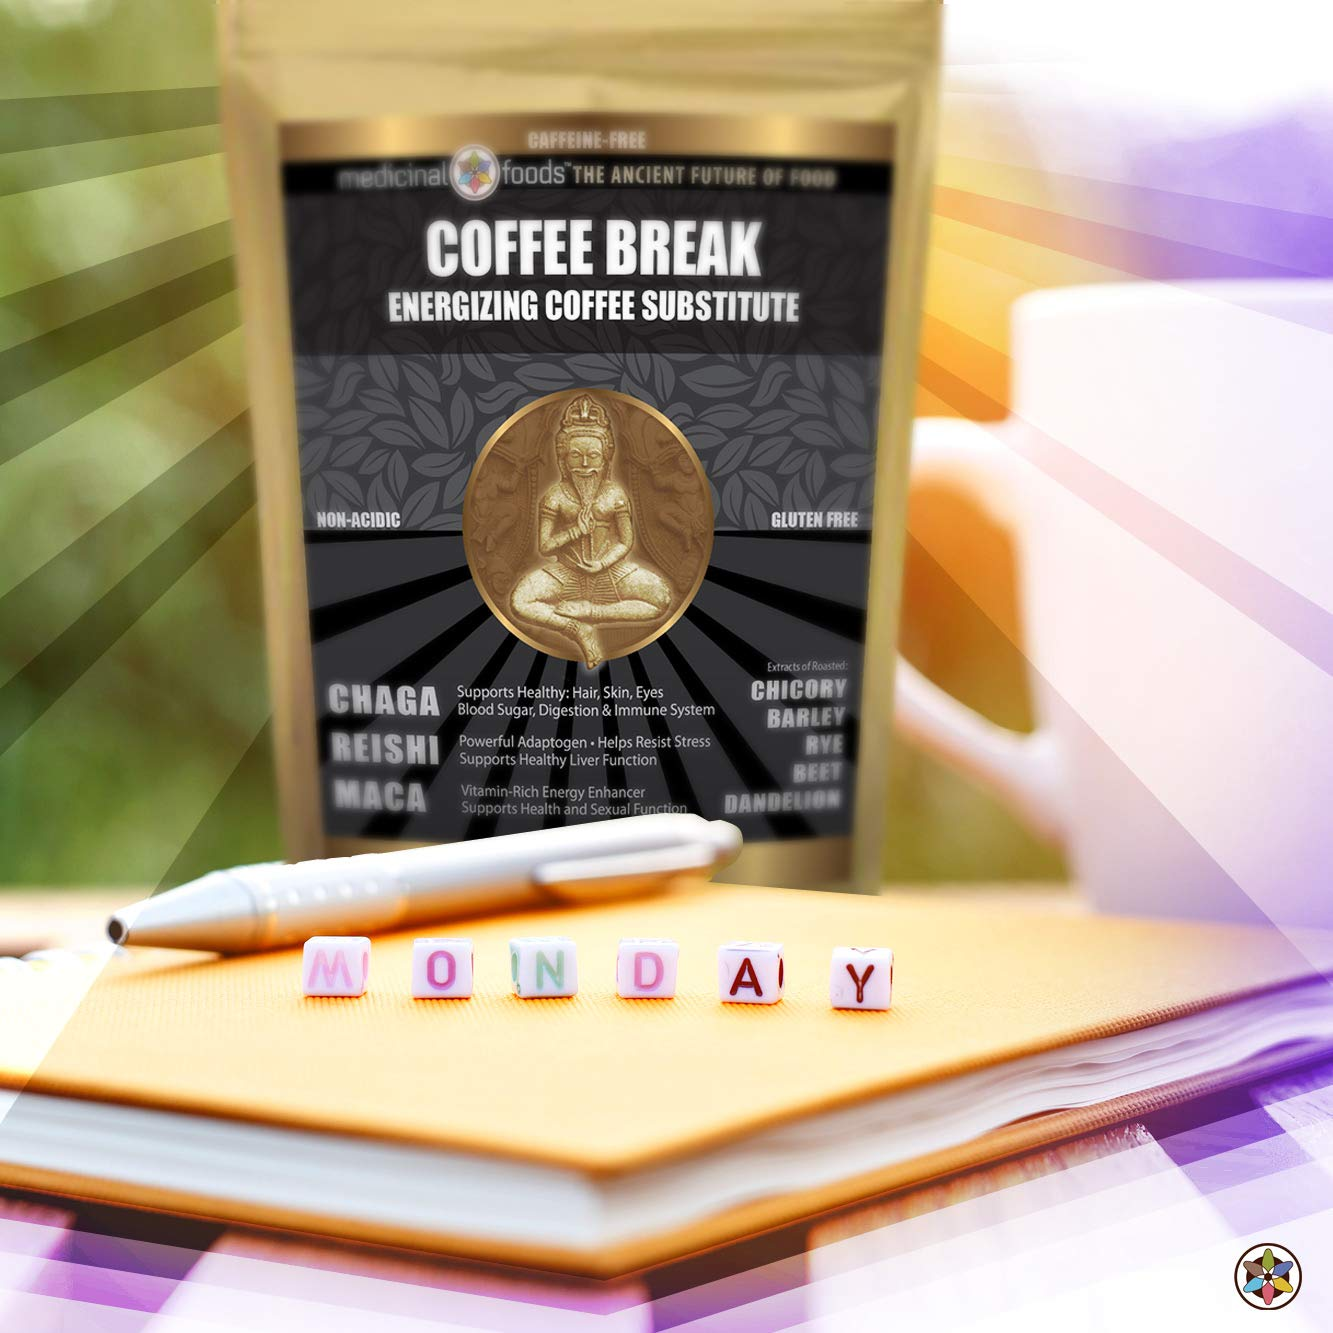 Medicinal Foods Healthy Energy Drink: Caffeine-Free Coffee Substitute, Loaded with Superfoods, such as Chaga, Reishi, and Maca, Non-Acidic, Non-GMO, All-Natural, Organic, Gluten-Free (6oz) by Medicinal Foods, LLC.